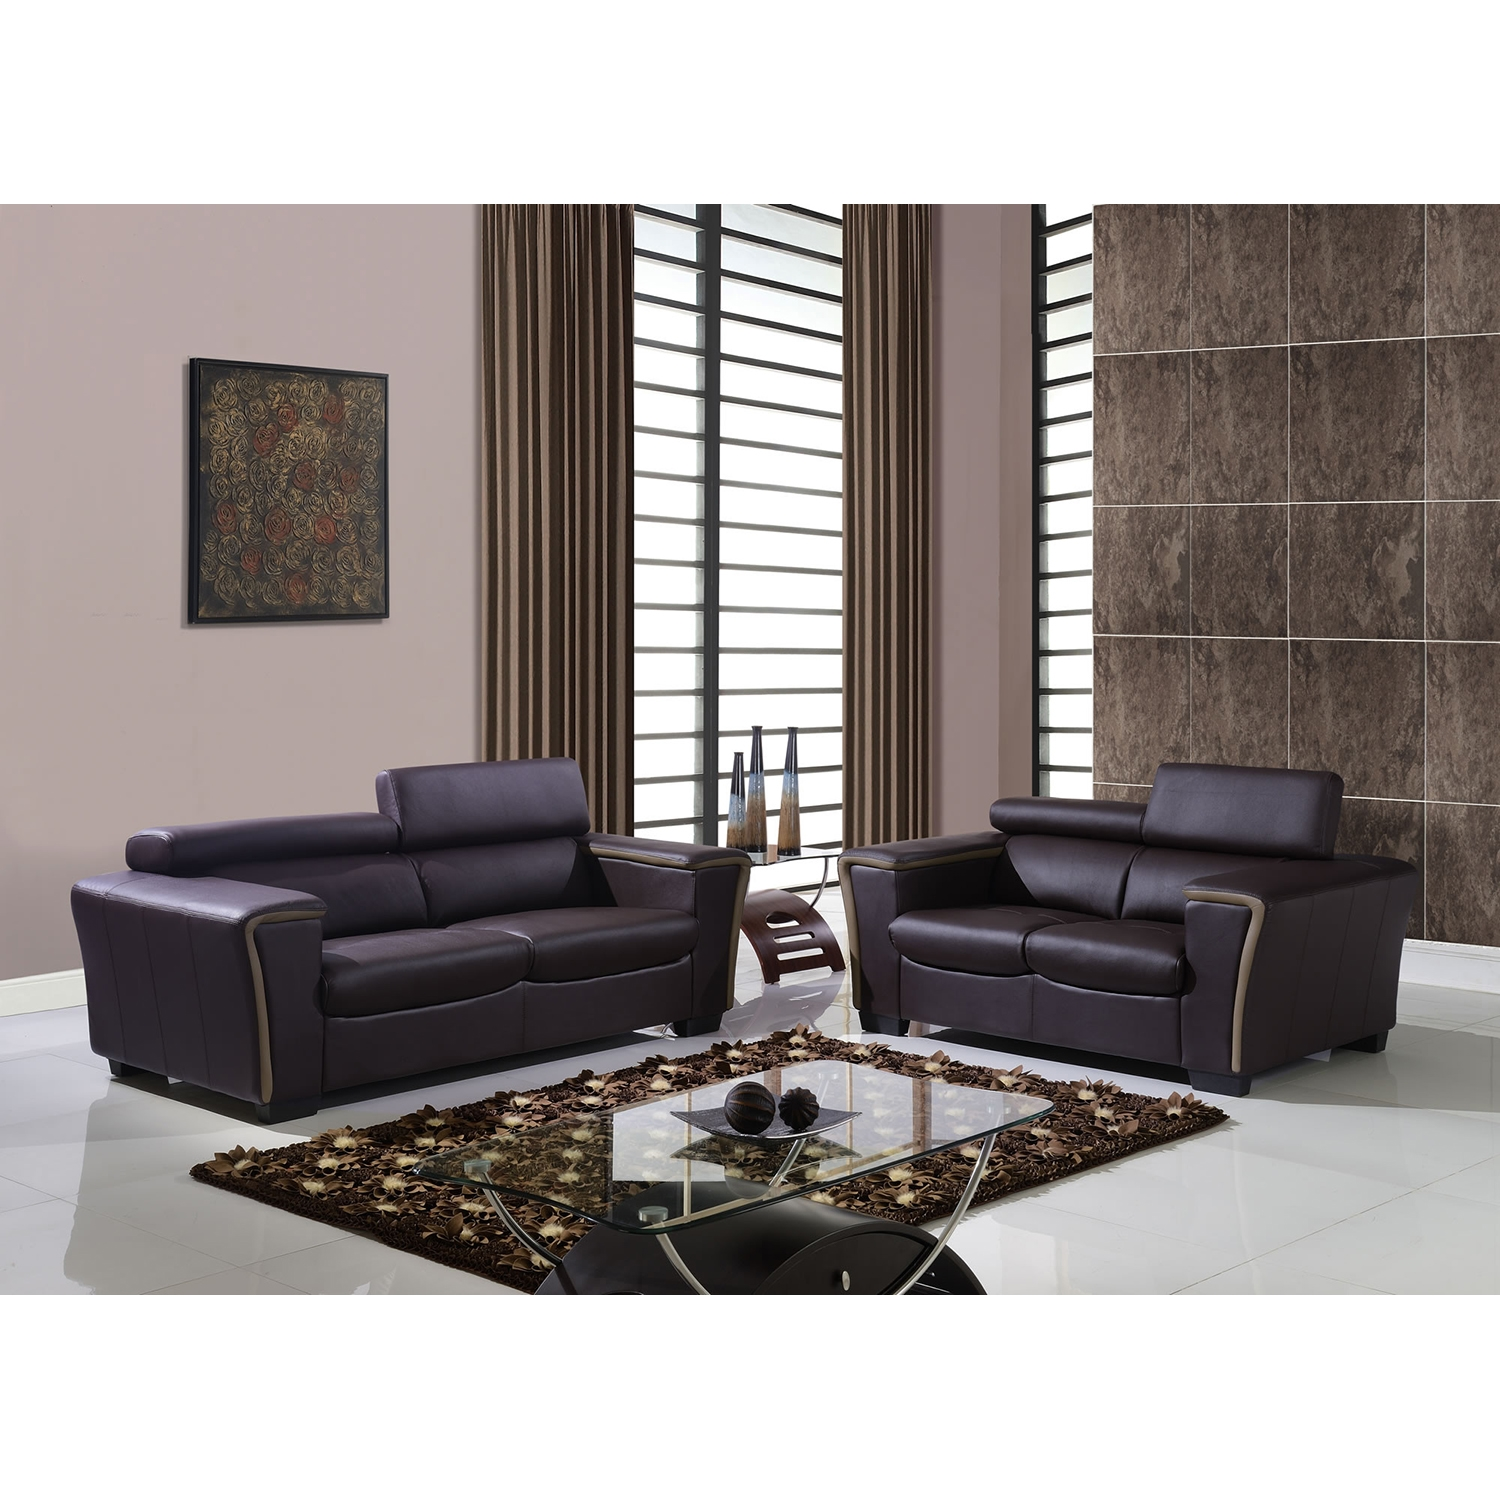 Mikayla Sofa Set with Headrest Function in Chocolate/Dark Cappuccino